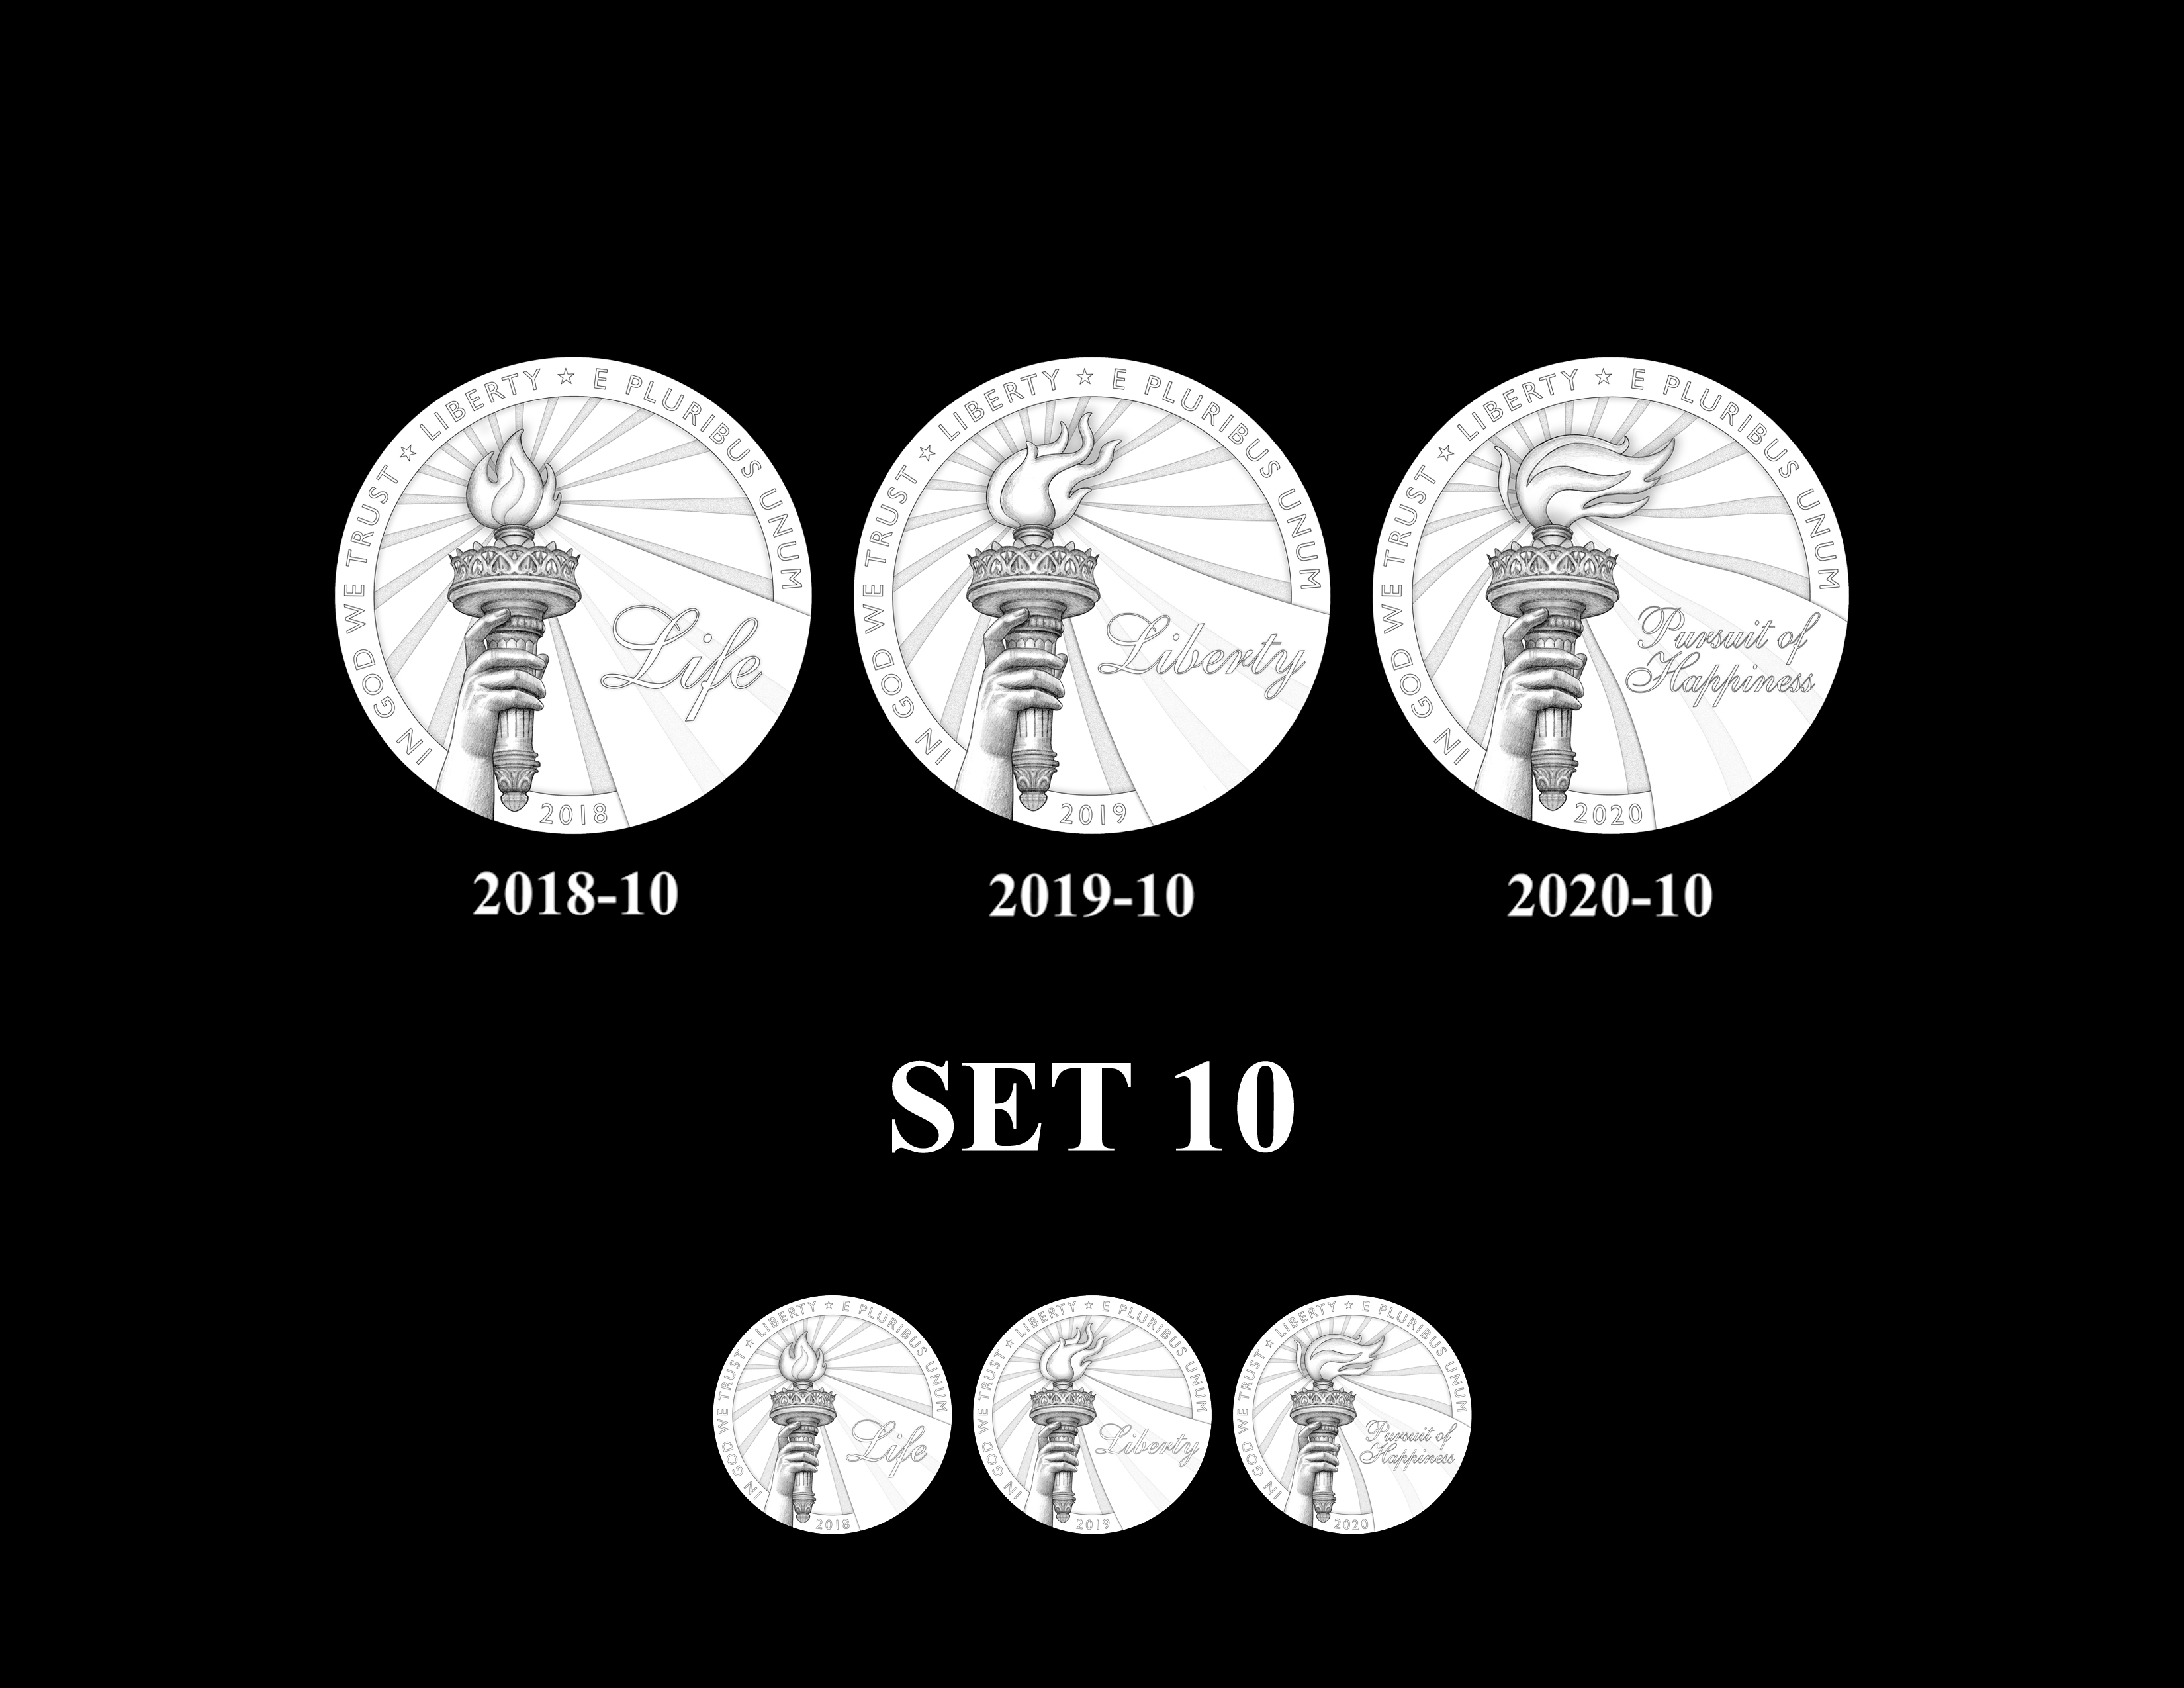 SET 10 - 2018 2019 and 2020 American Eagle Platinum Proof Program